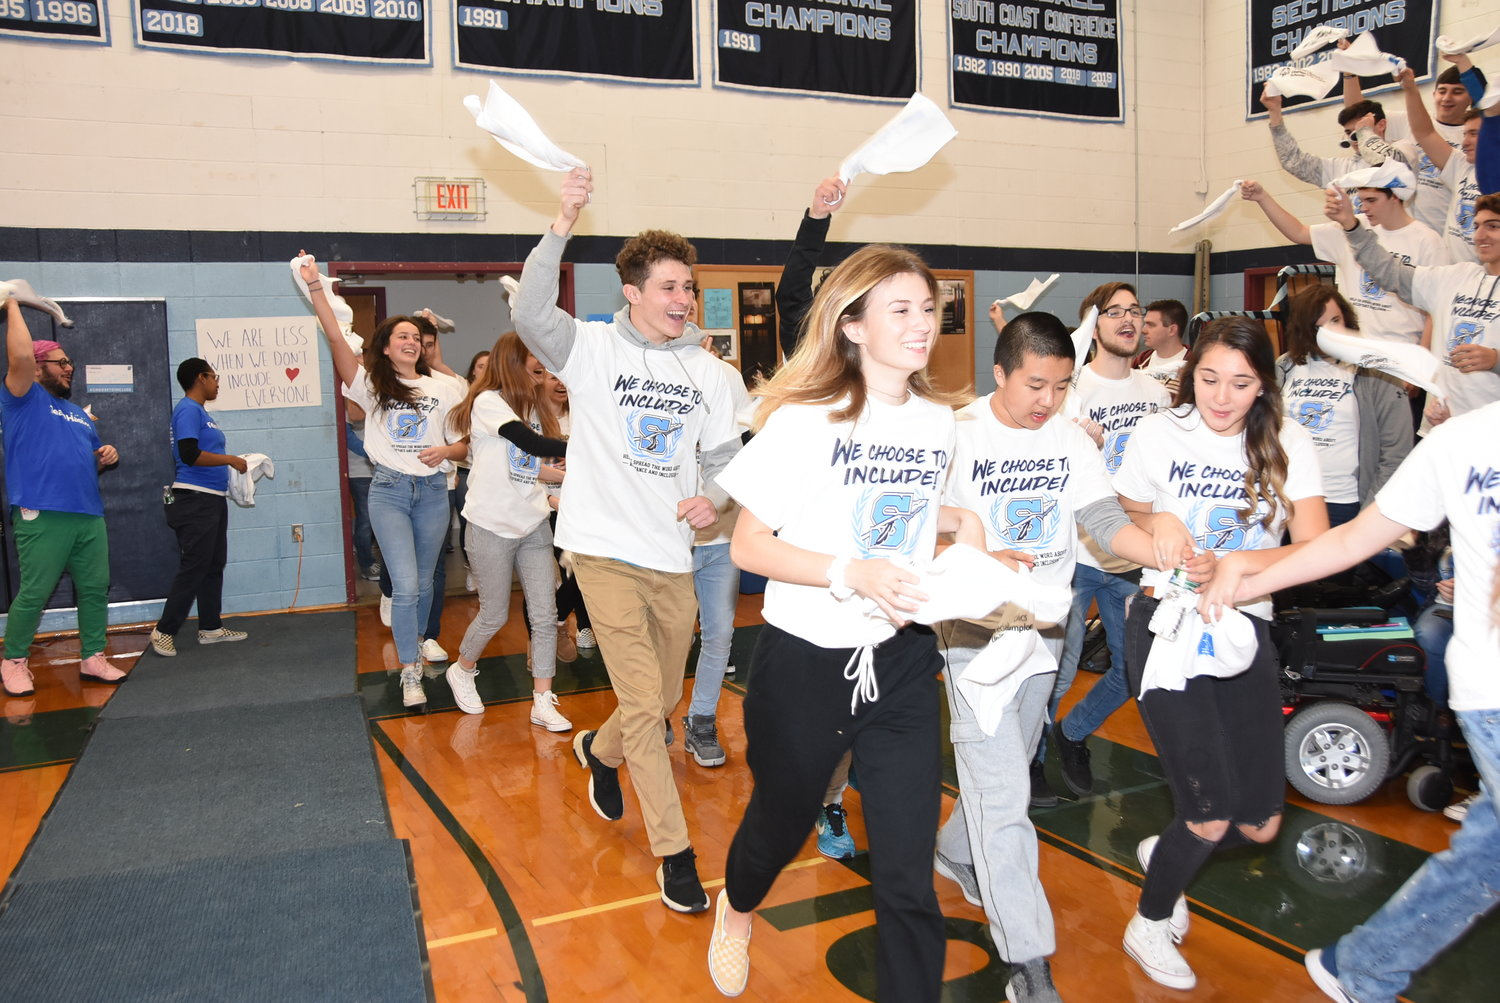 Members of the Unified team run into the gymnasium for the School-wide Assembly.